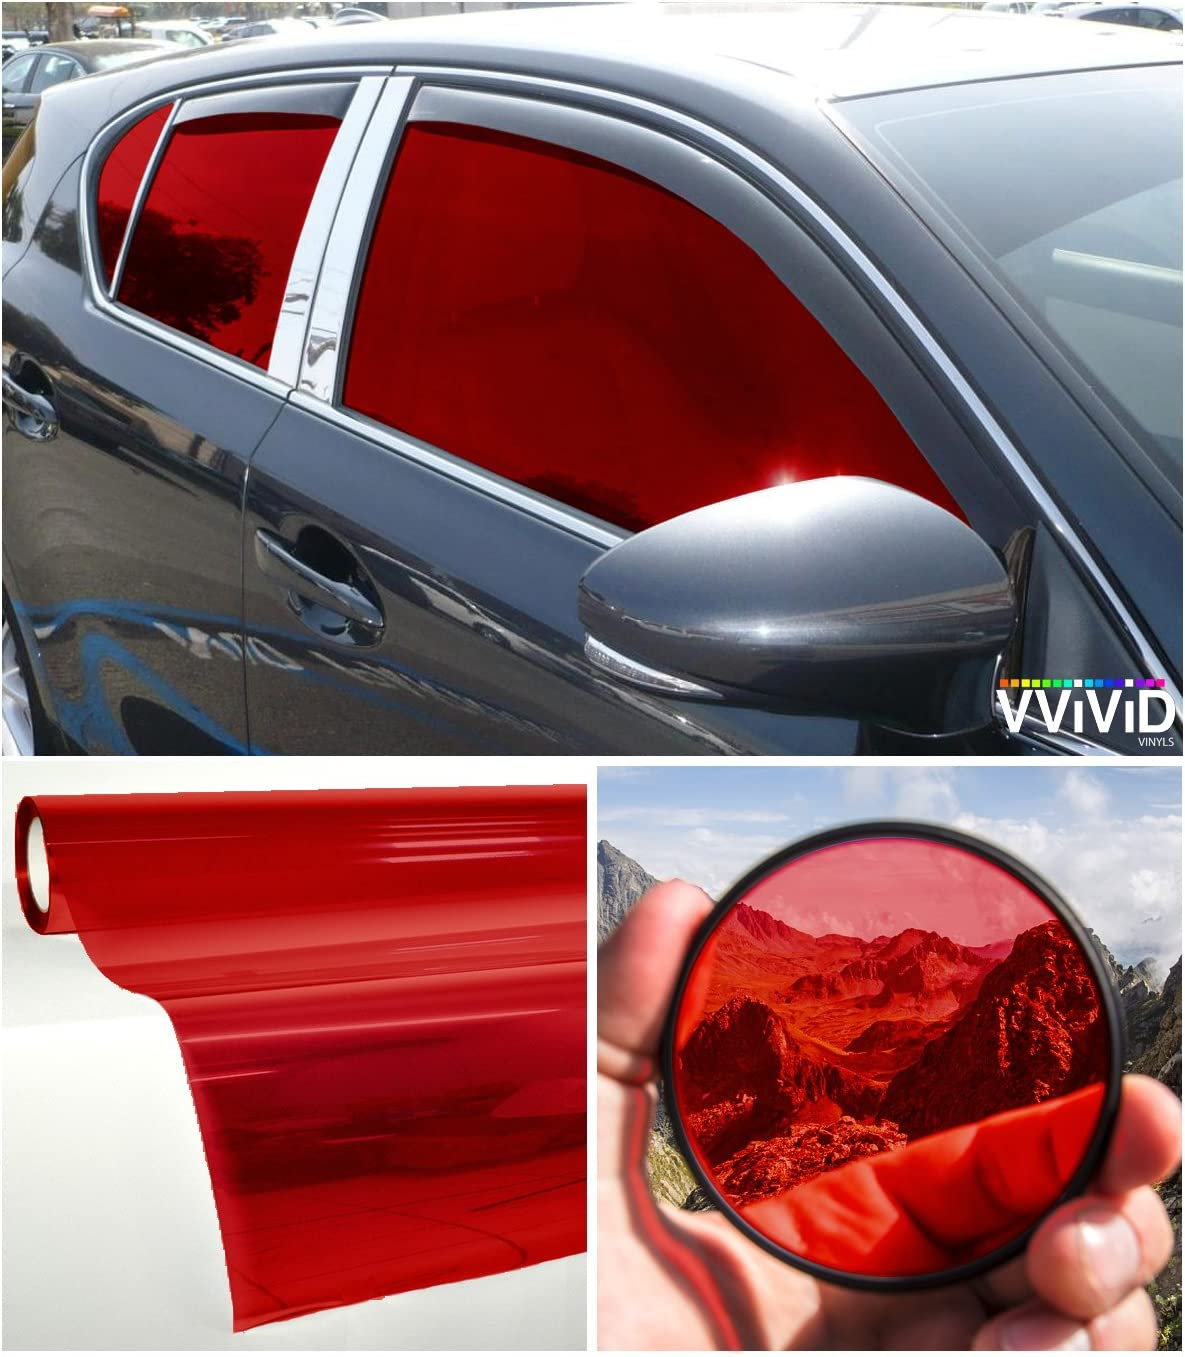 Lot of 2 Red Little Foot Auto Glass Window Film Tint Installation Tools NEW